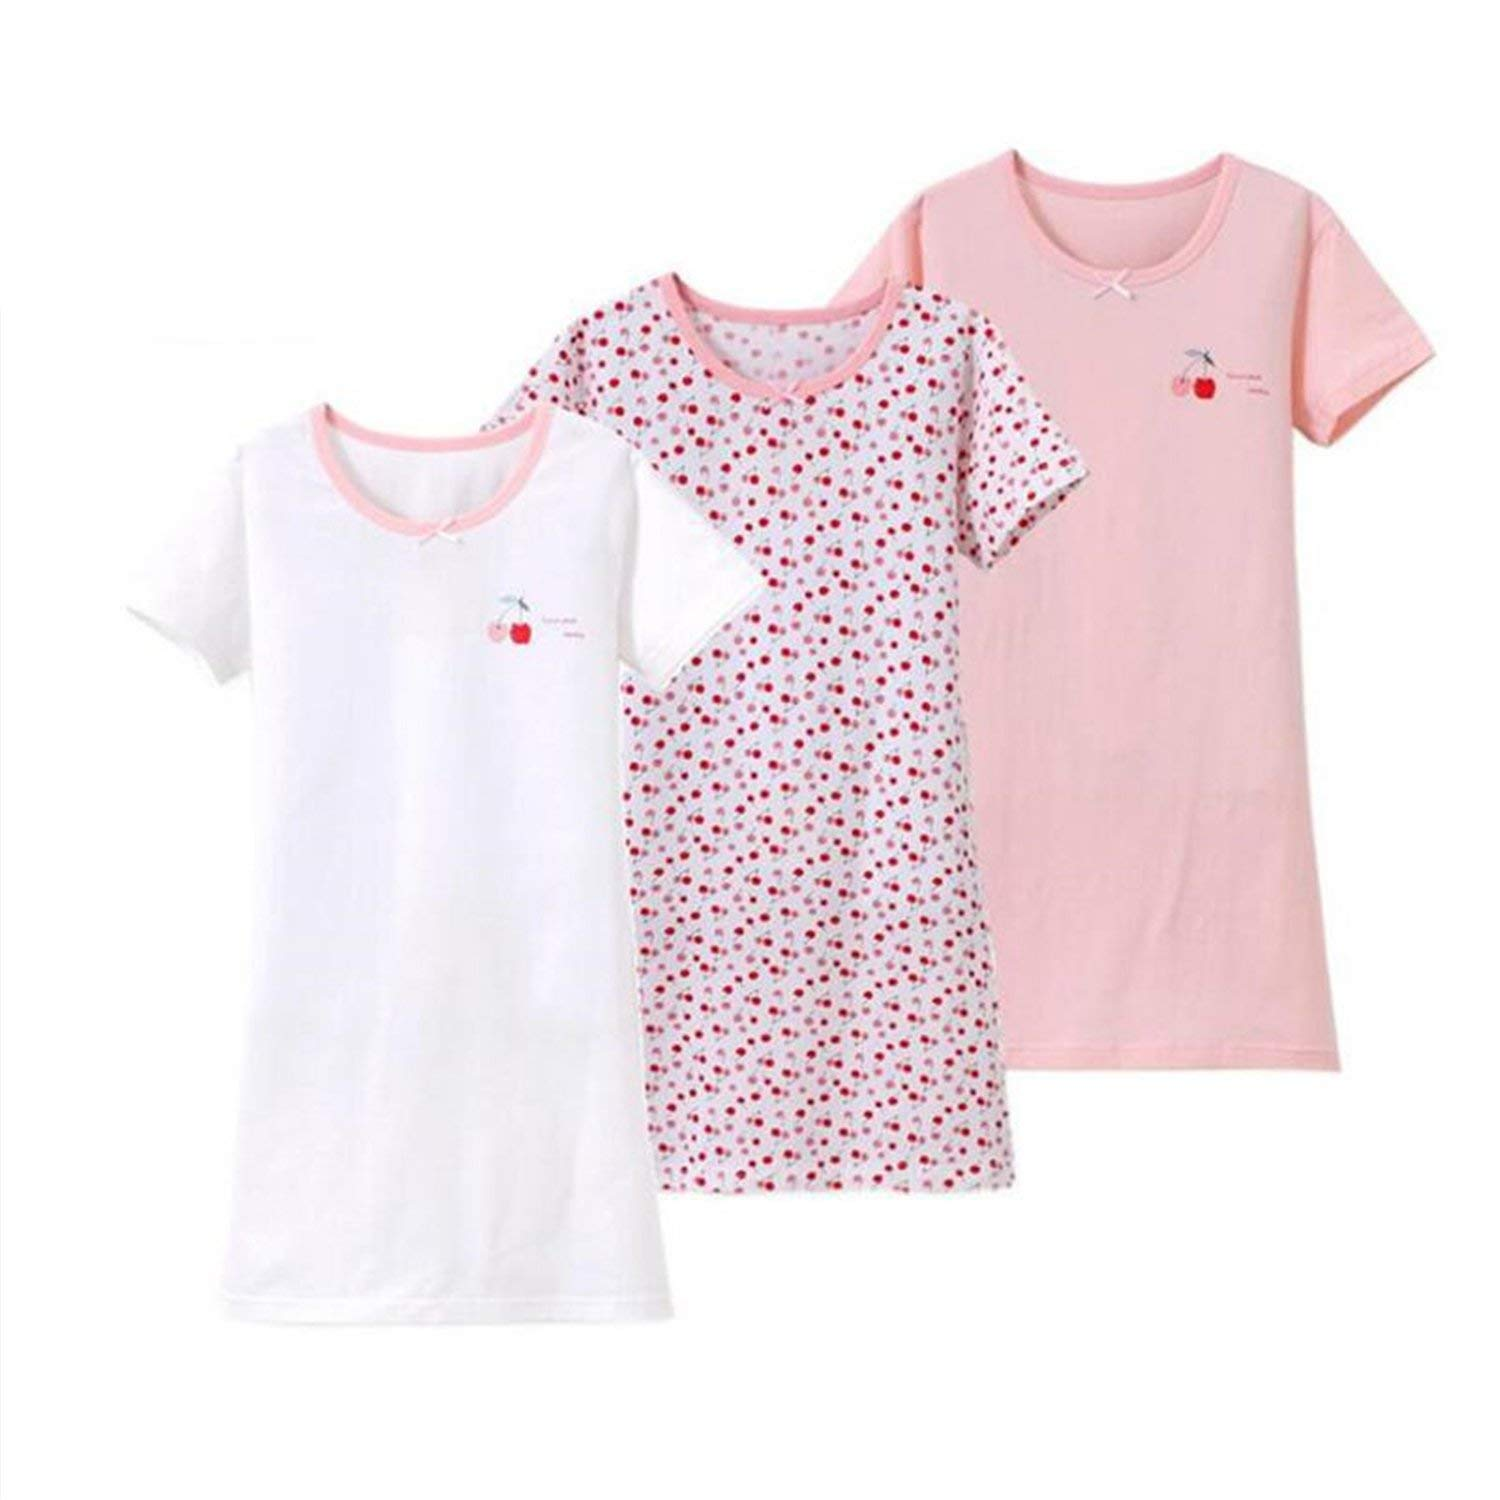 cdccb5869a Get Quotations · 3 Pcs Fashion Girl Cotton Sleeping Dress Girls Nightgown Sleepwear  Pyjamas Kids Sleepwear Children Pajamas Dressing